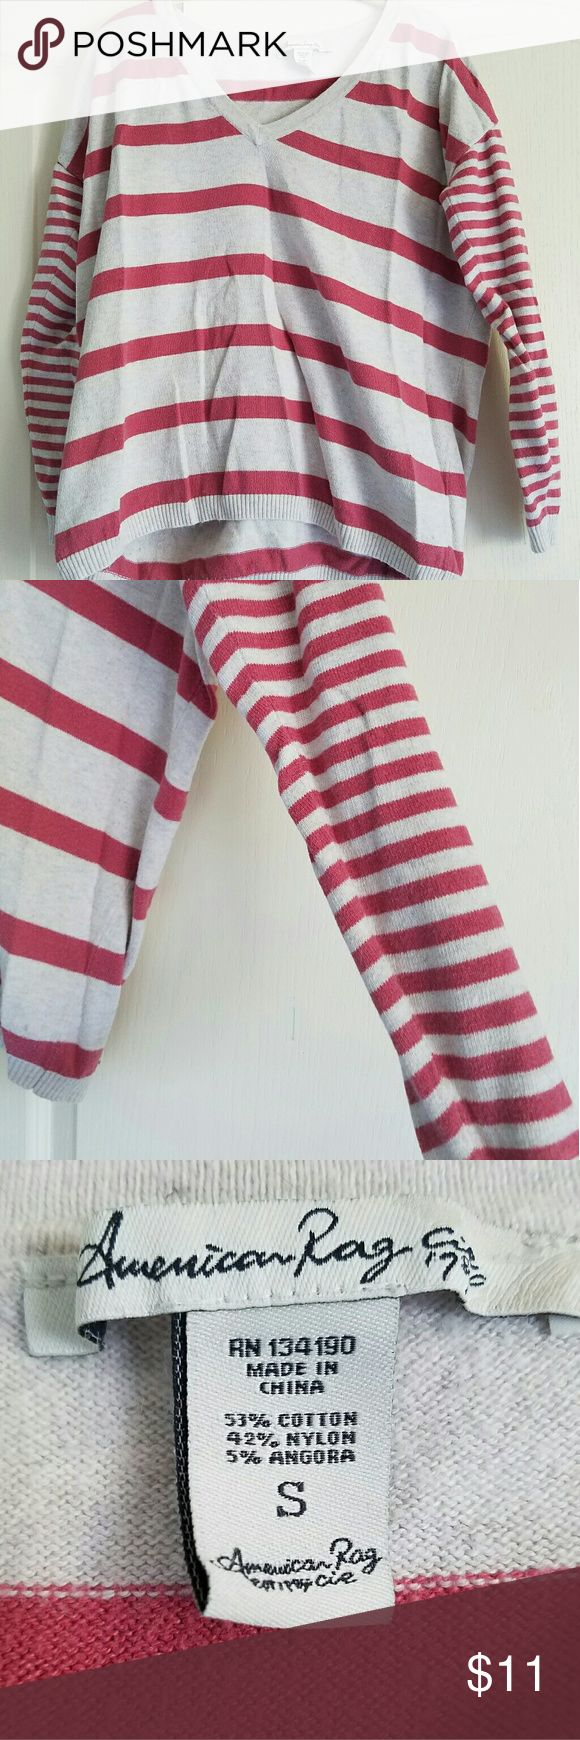 American Rag stripped sweater This is an American Rag stripped pink and cream sweater. It is a V-neck, but not too deep. The middle has larger stripes and the arms have thinner ones. Size S. No ware or stains. American Rag Sweaters V-Necks